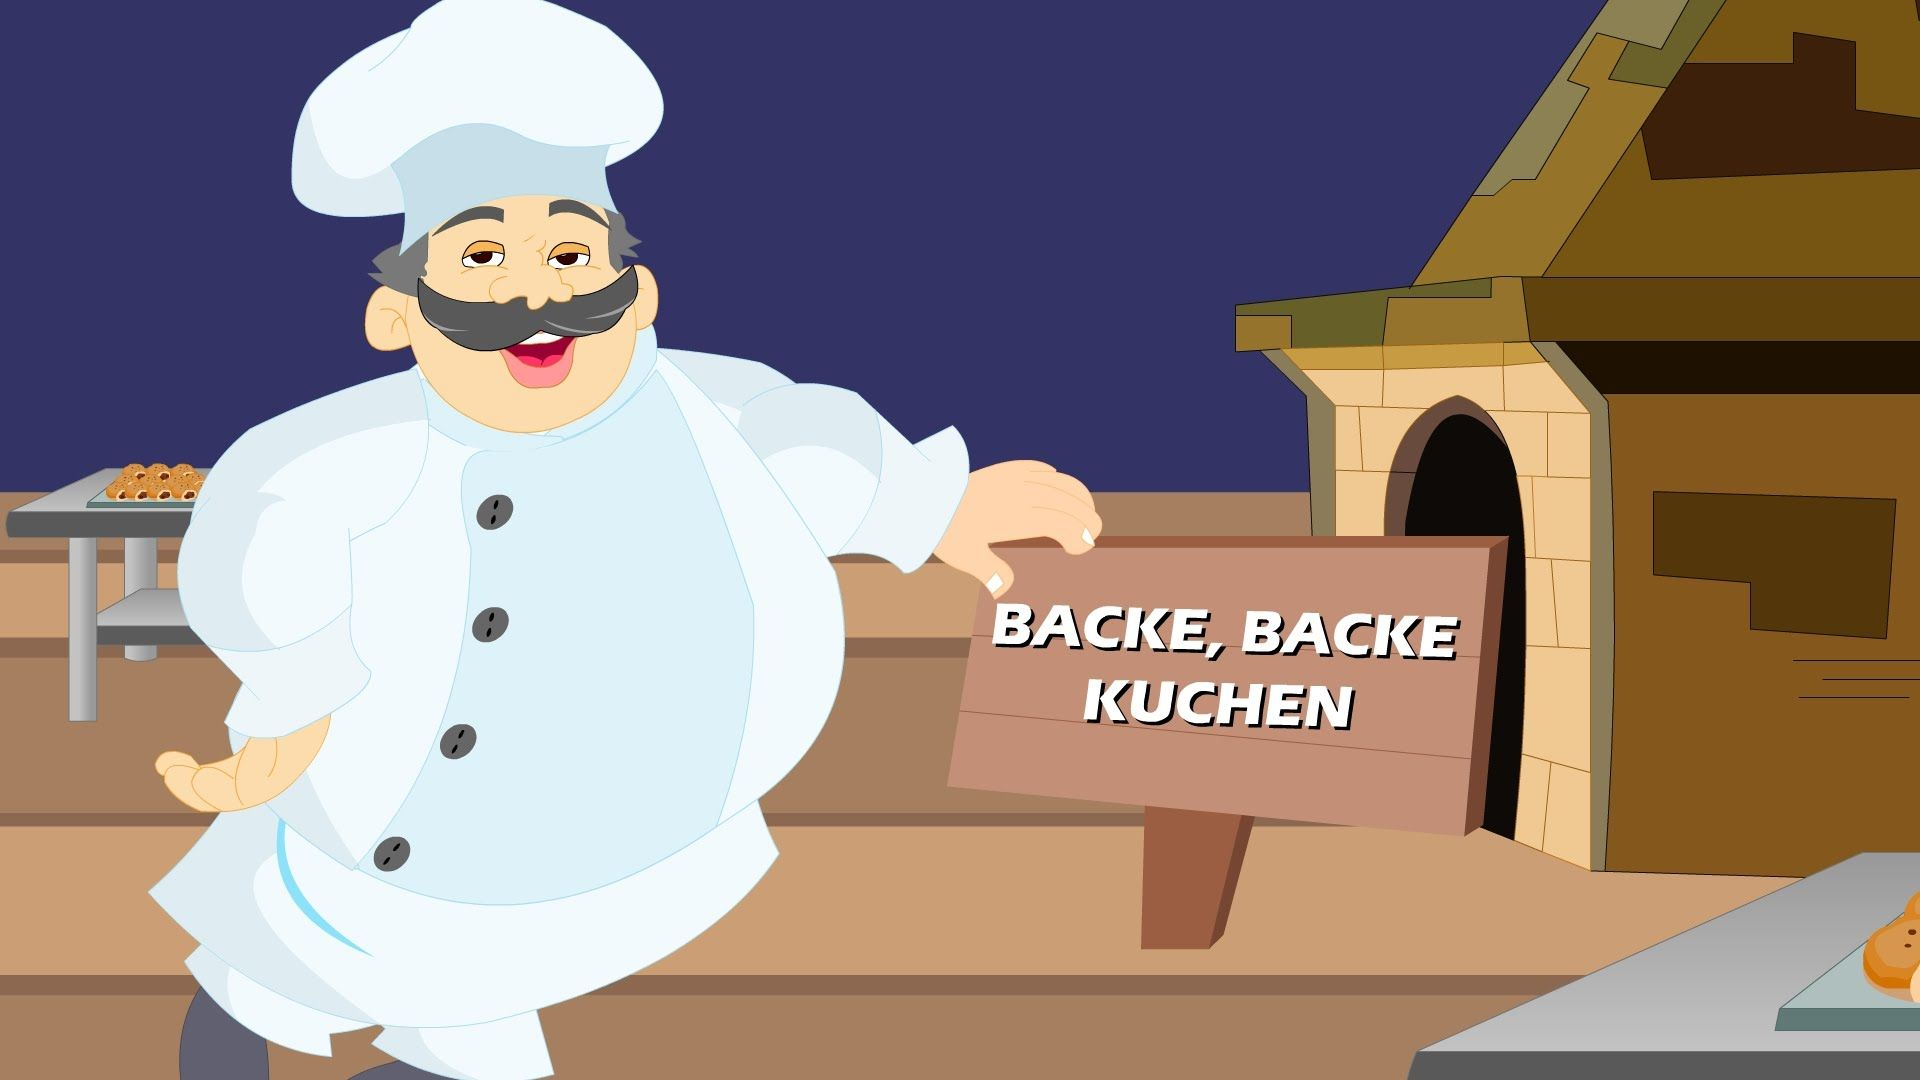 Backe Backe Kuchen Song Backe Backe Kuchen 43 30 Min Deutsche Kinderlieder